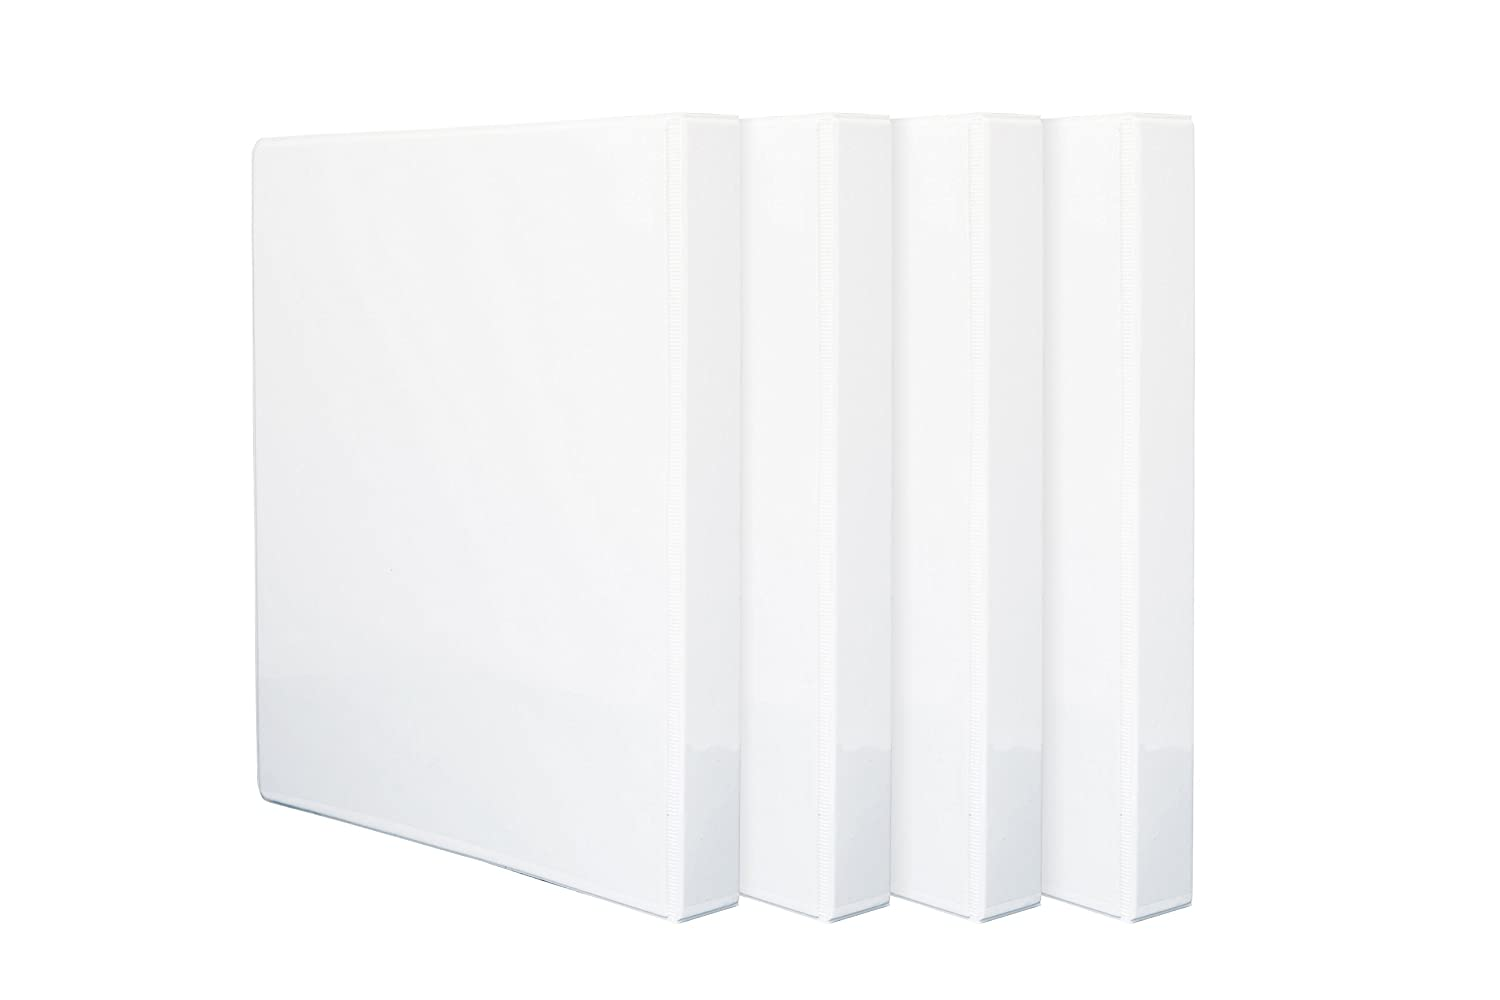 4 Pack 1'' 3-Ring Binders, Slant D Ring, Rugged Design for Home, Office, and School, Holds up to 225 Sheets of 8.5'' x 11'' Paper, White, 4 Binders